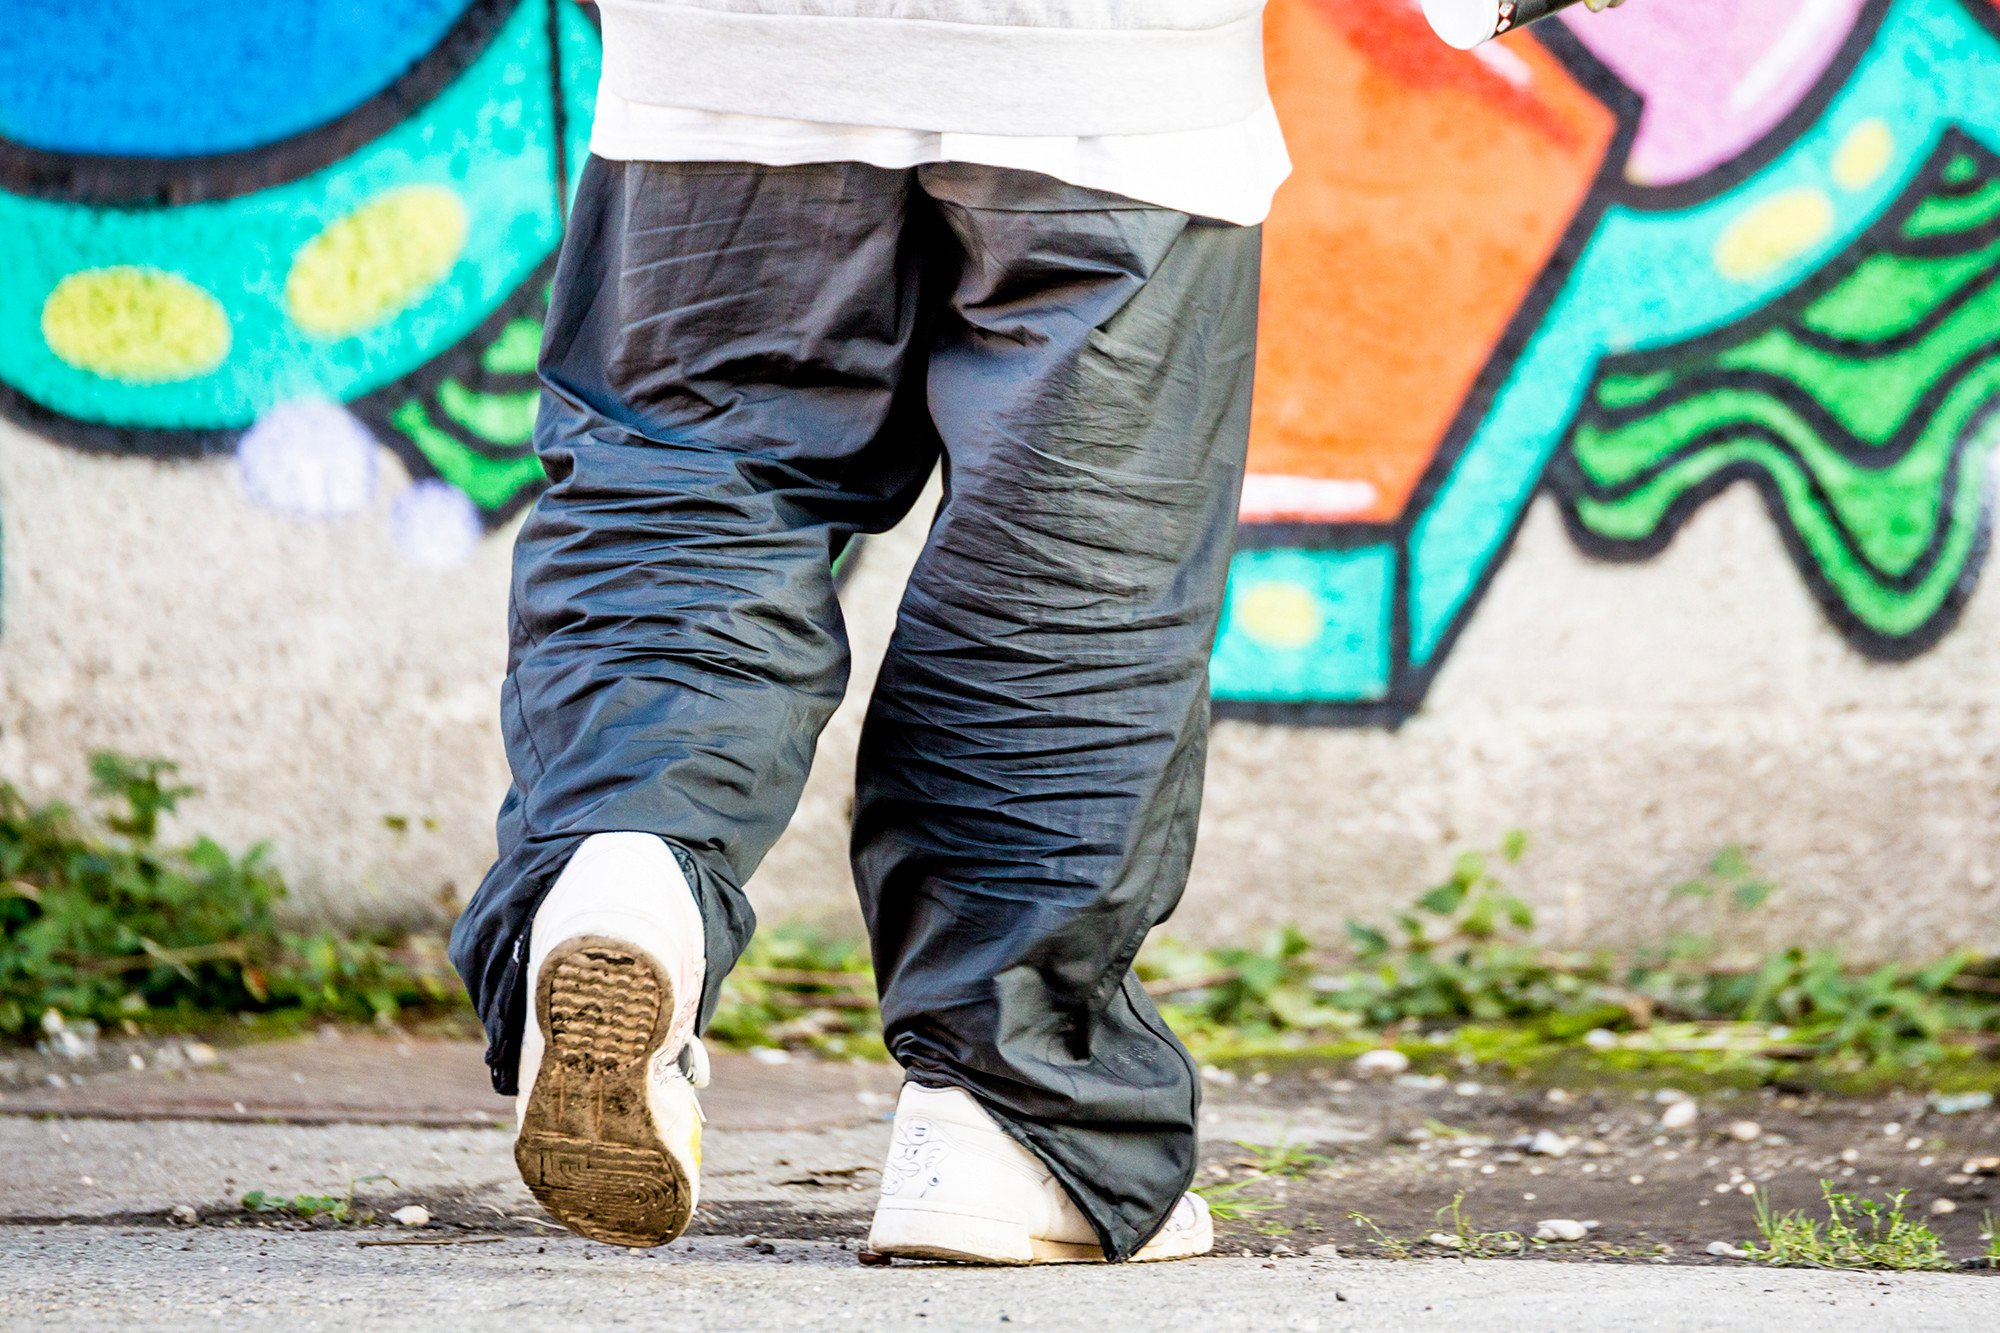 Lawmakers propose bill to ban saggy pants